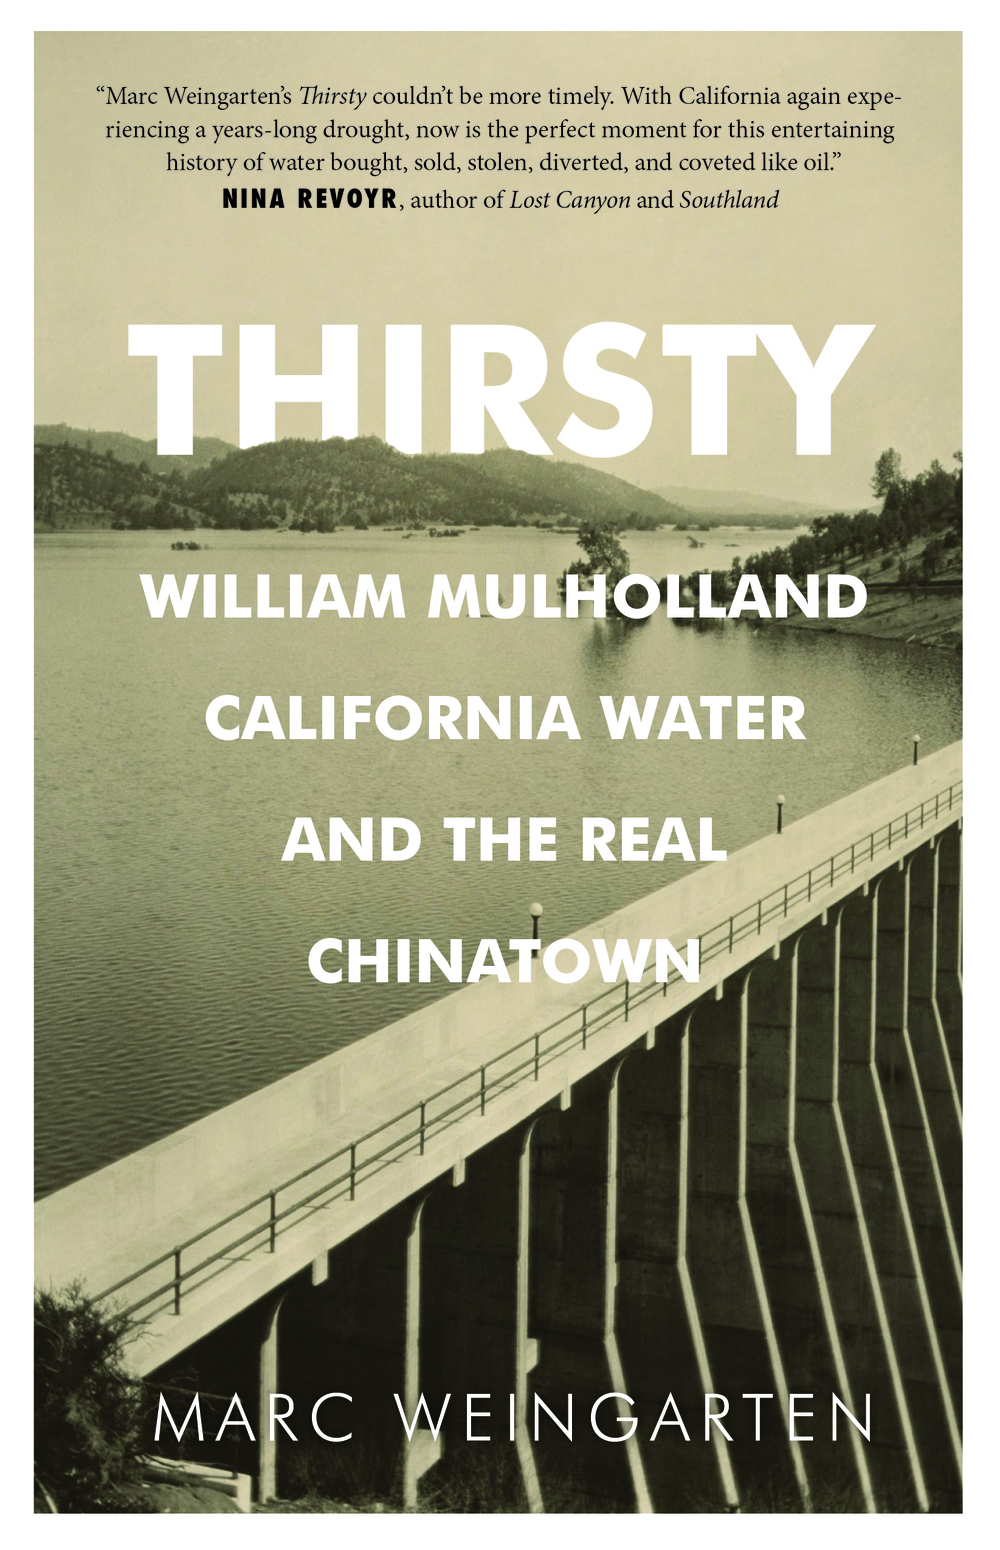 Thirsty is an exploration of Los Angeles' storied history in regards to water. Starting with William Mullholland and his aqueducts, through the 1926 collapse of the St. Francis Dam, which killed hundreds, and on through to the profound implications Los Angeles' path has for today. Where Marc Reiser's seminal 1986 book Cadillac Desert started, Marc Weingarten's Thirsty continues, illuminating the complexities of the Los Angeles aquaduct system, the politics behind supplying America's second largest city with water from hundreds of mile away, and the disaster that haunted William Mullholland until his final days.